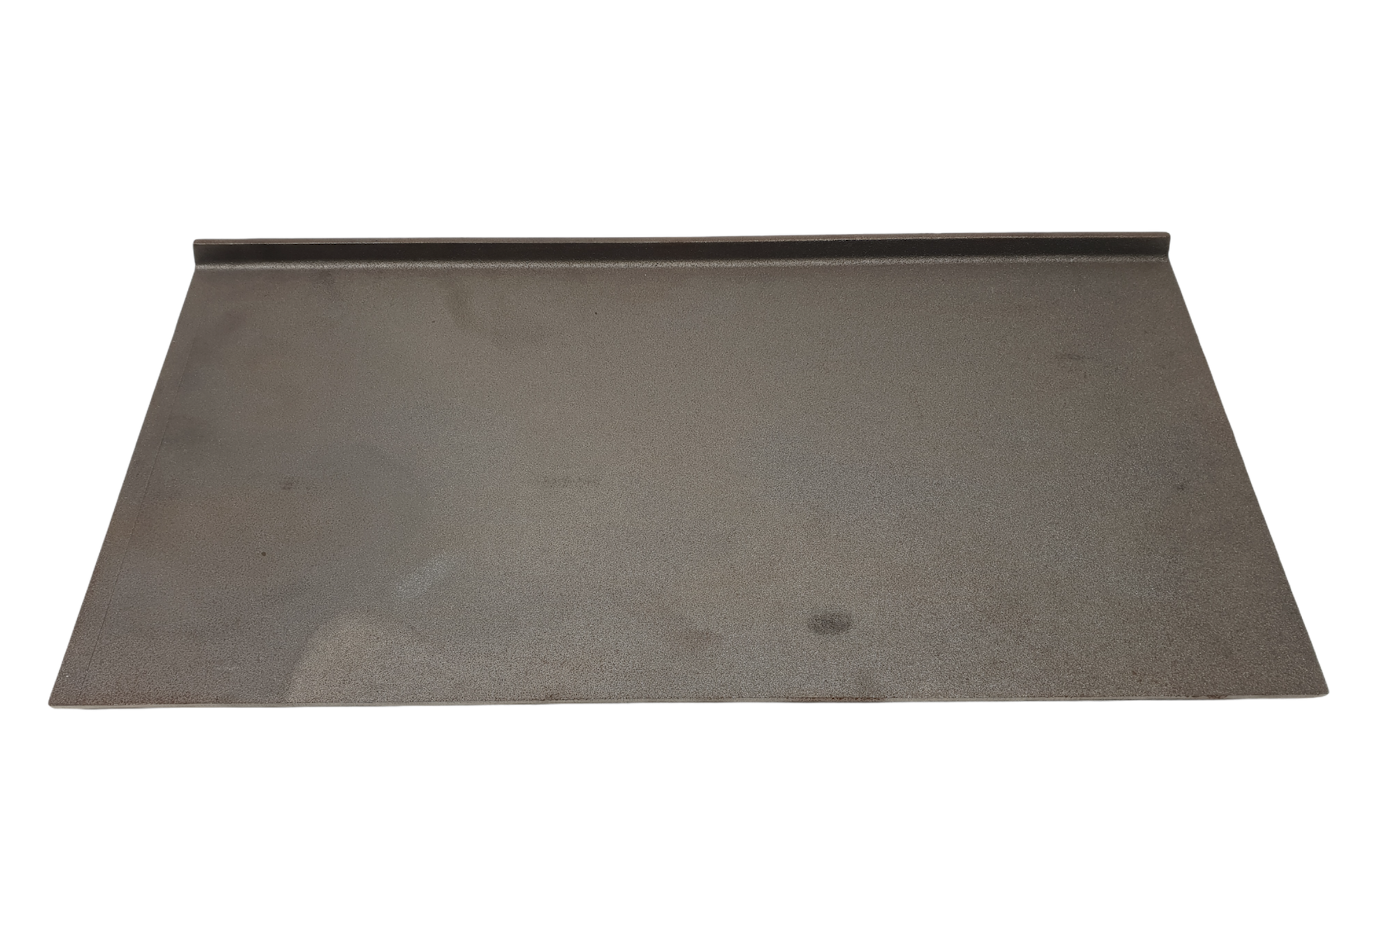 A lower baffle plate suitable for an Morso 08 stove.